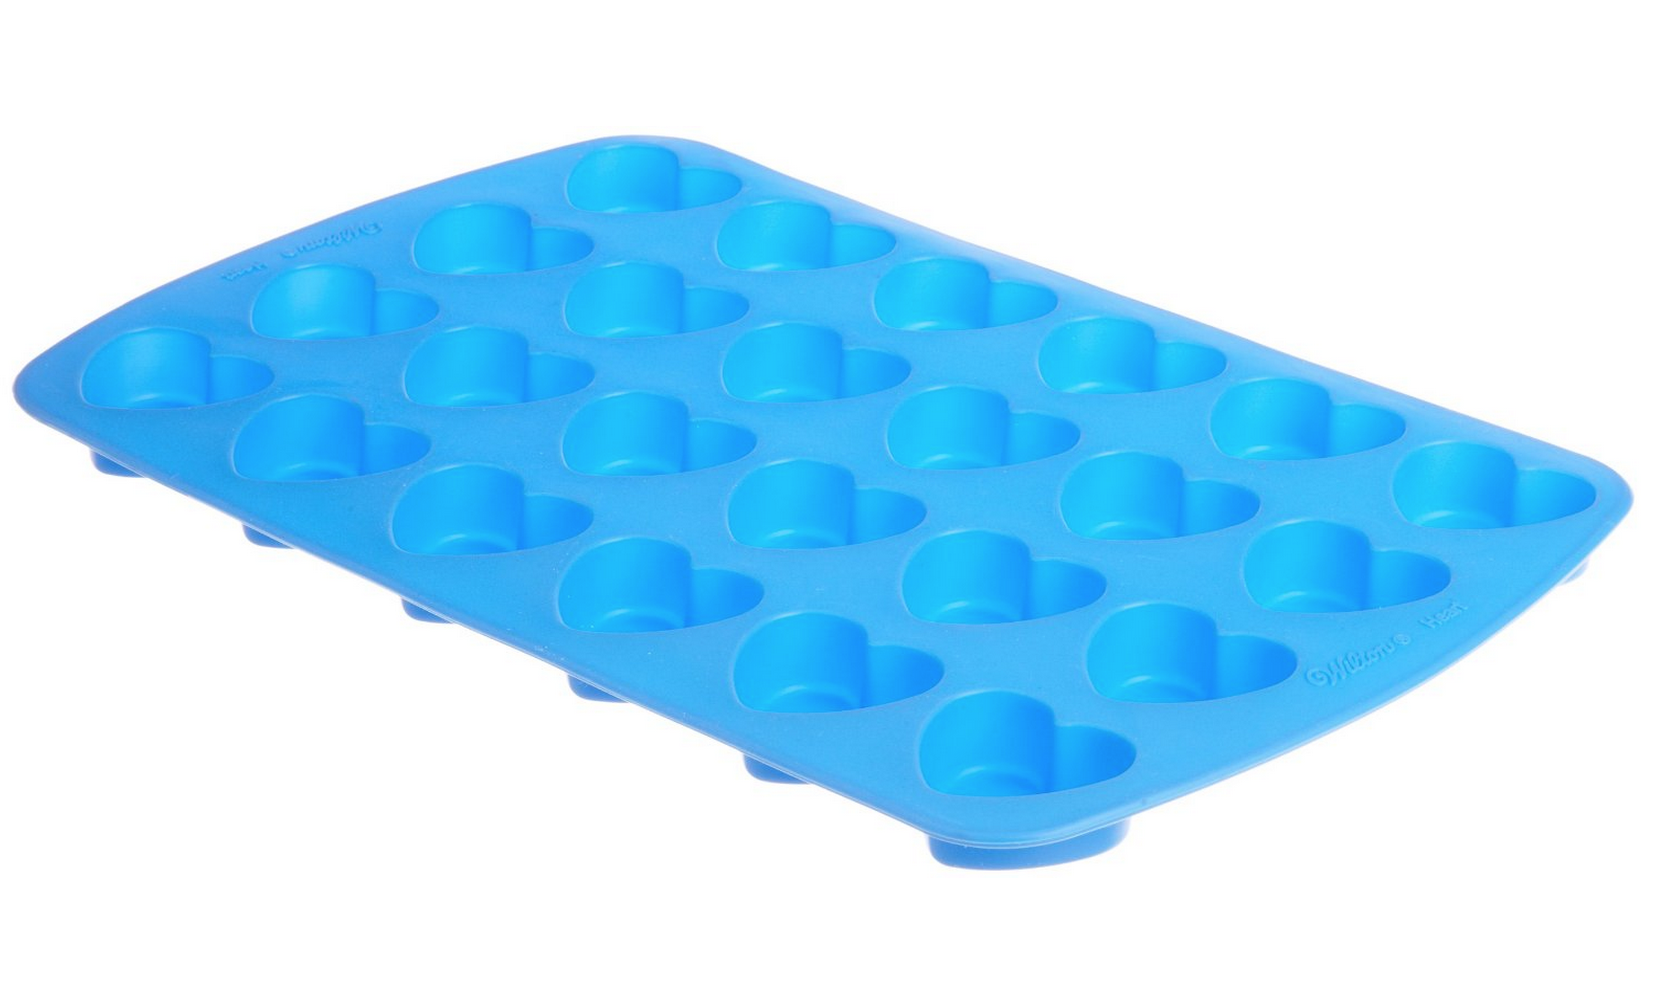 Wilton Easy Flex Heart Silicone Mold (24 Cavity) Only $8.48!